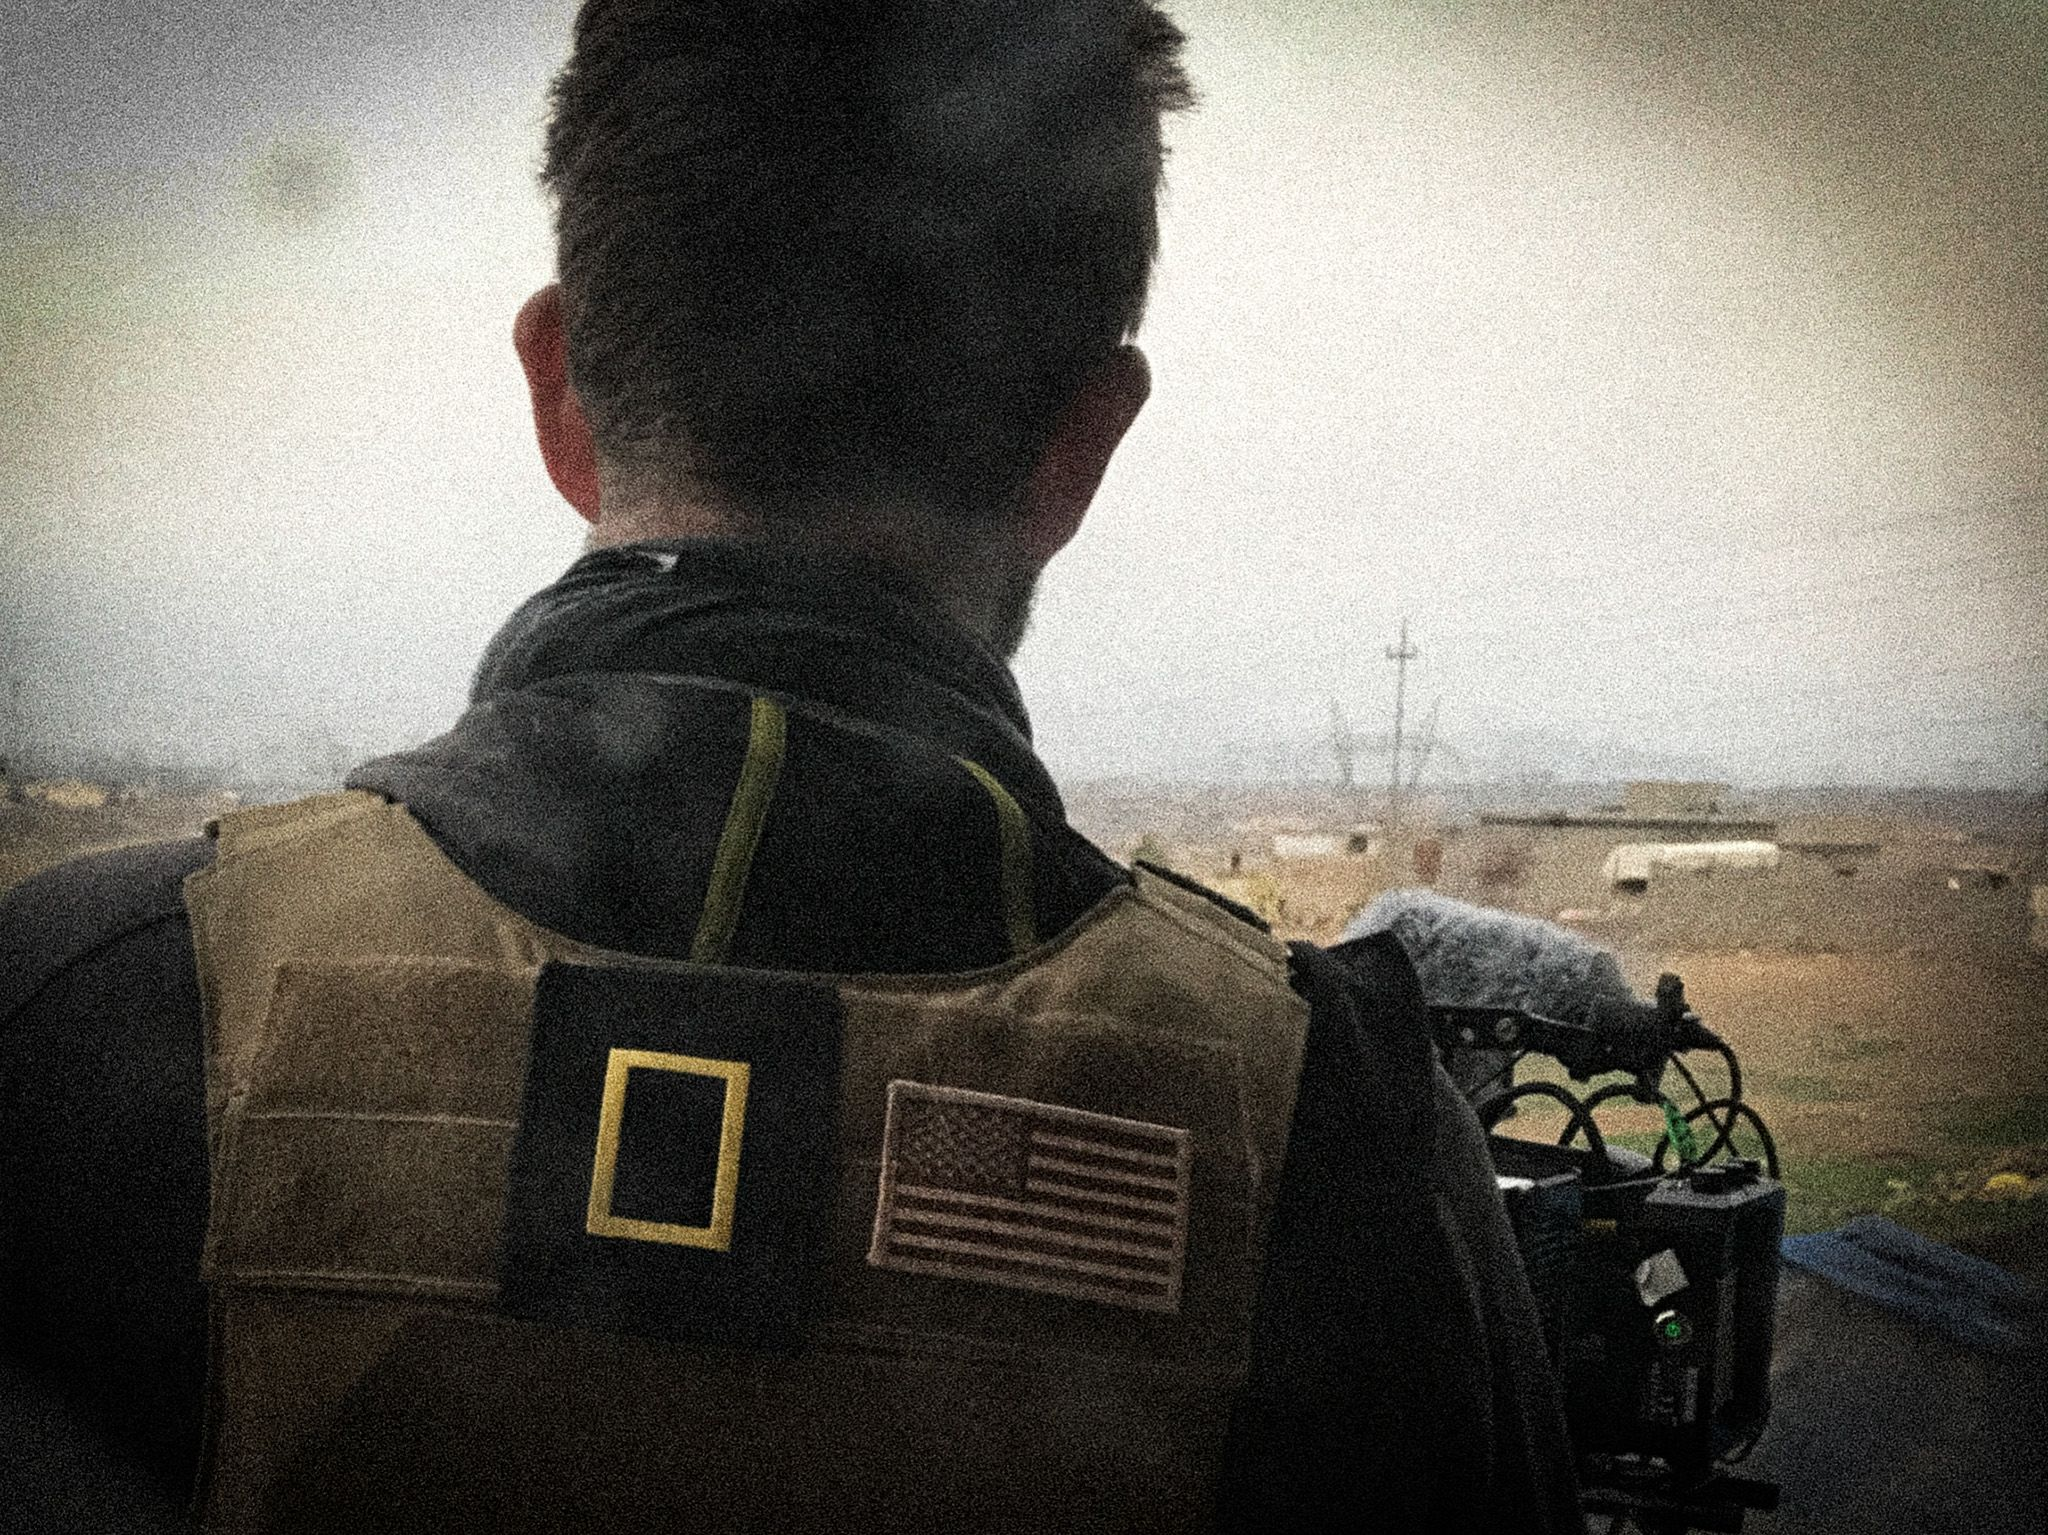 Mosul, Iraq:  Over the shoulder of a cameraman.  This image is from Chain of Command. [Photo of the day - 二月 2018]